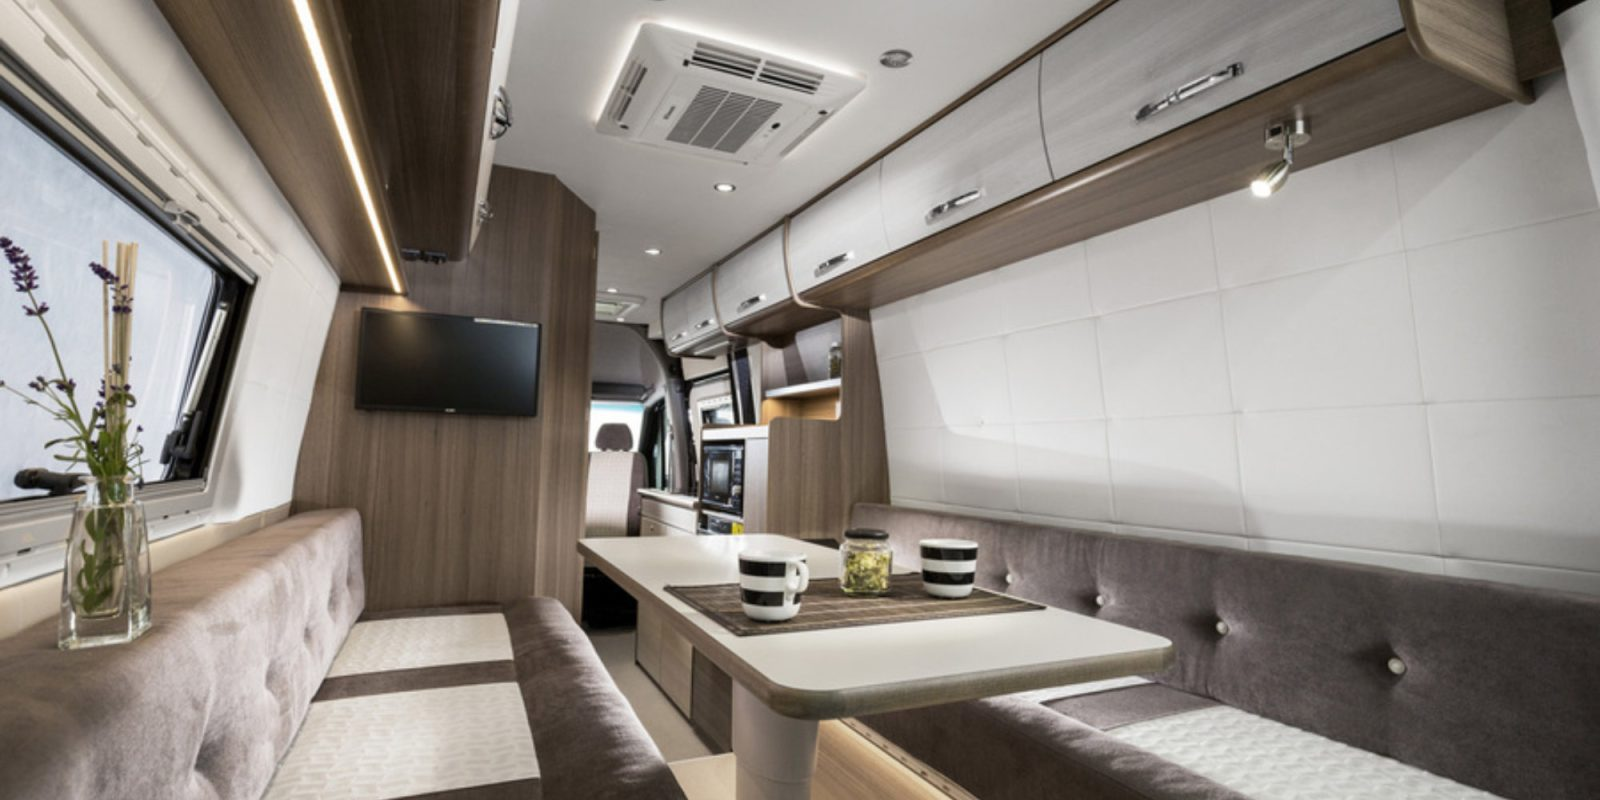 The Swan 699 camper van sleeps four and takes trips to the next level